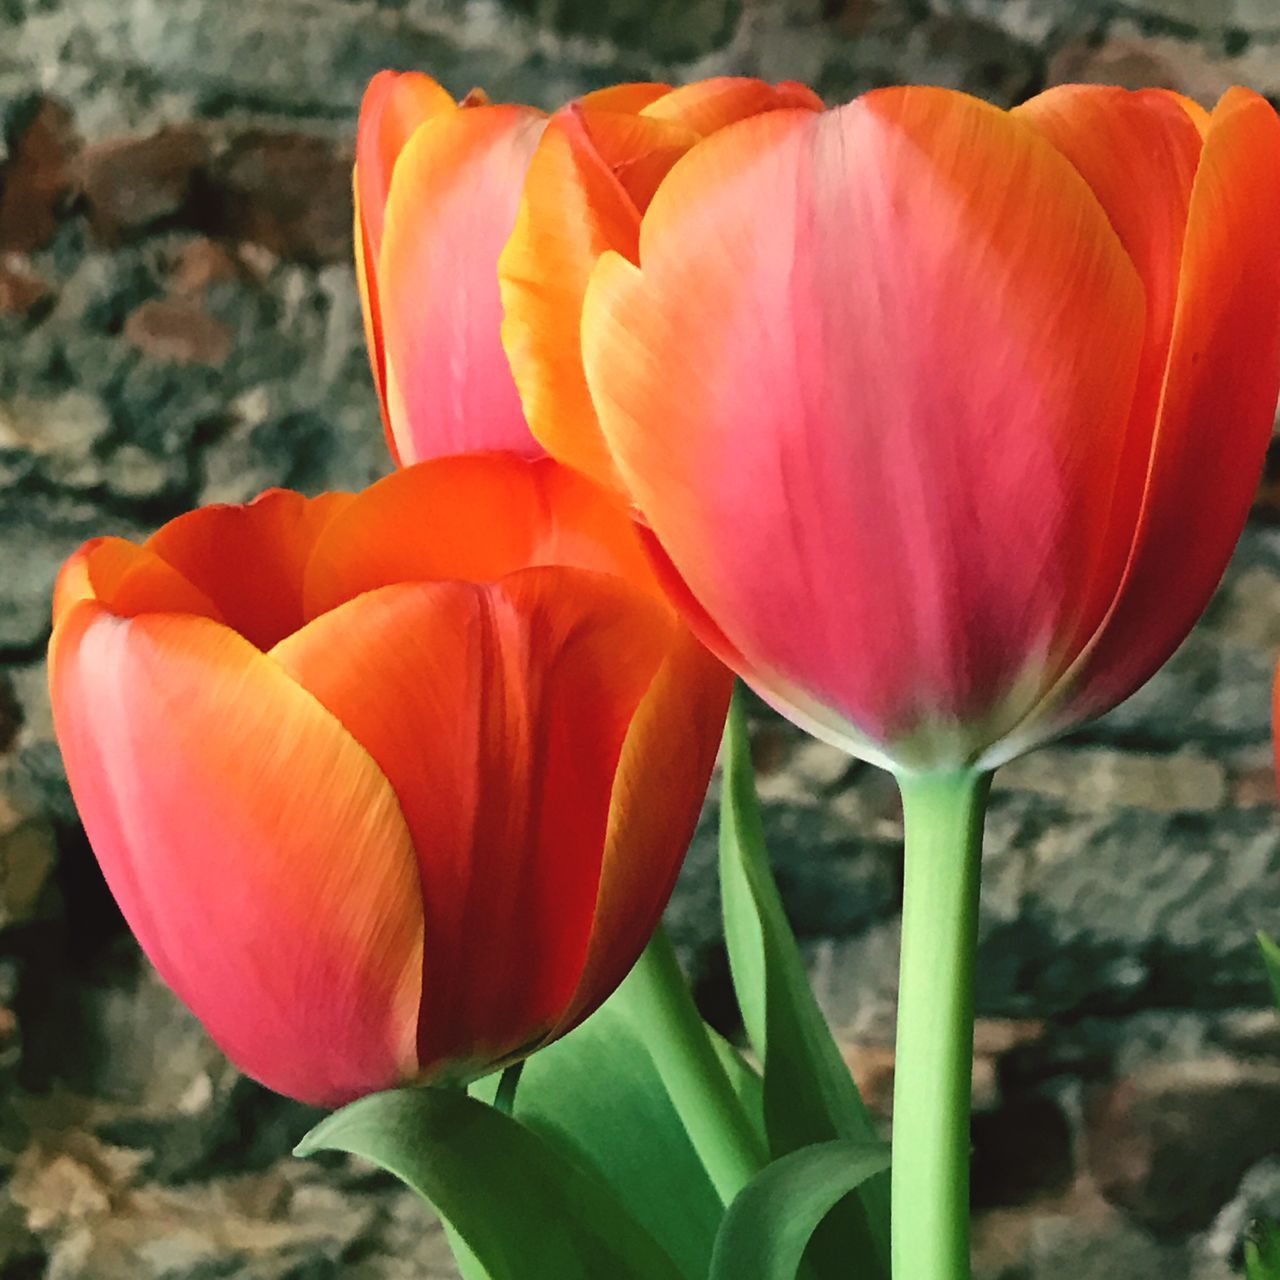 Tulips Red Green Brick Wall Background Close-up Flowers Bunch Of Flowers Flower Petal Freshness Fragility Flower Head Blooming Plant Orange Tulip Nature